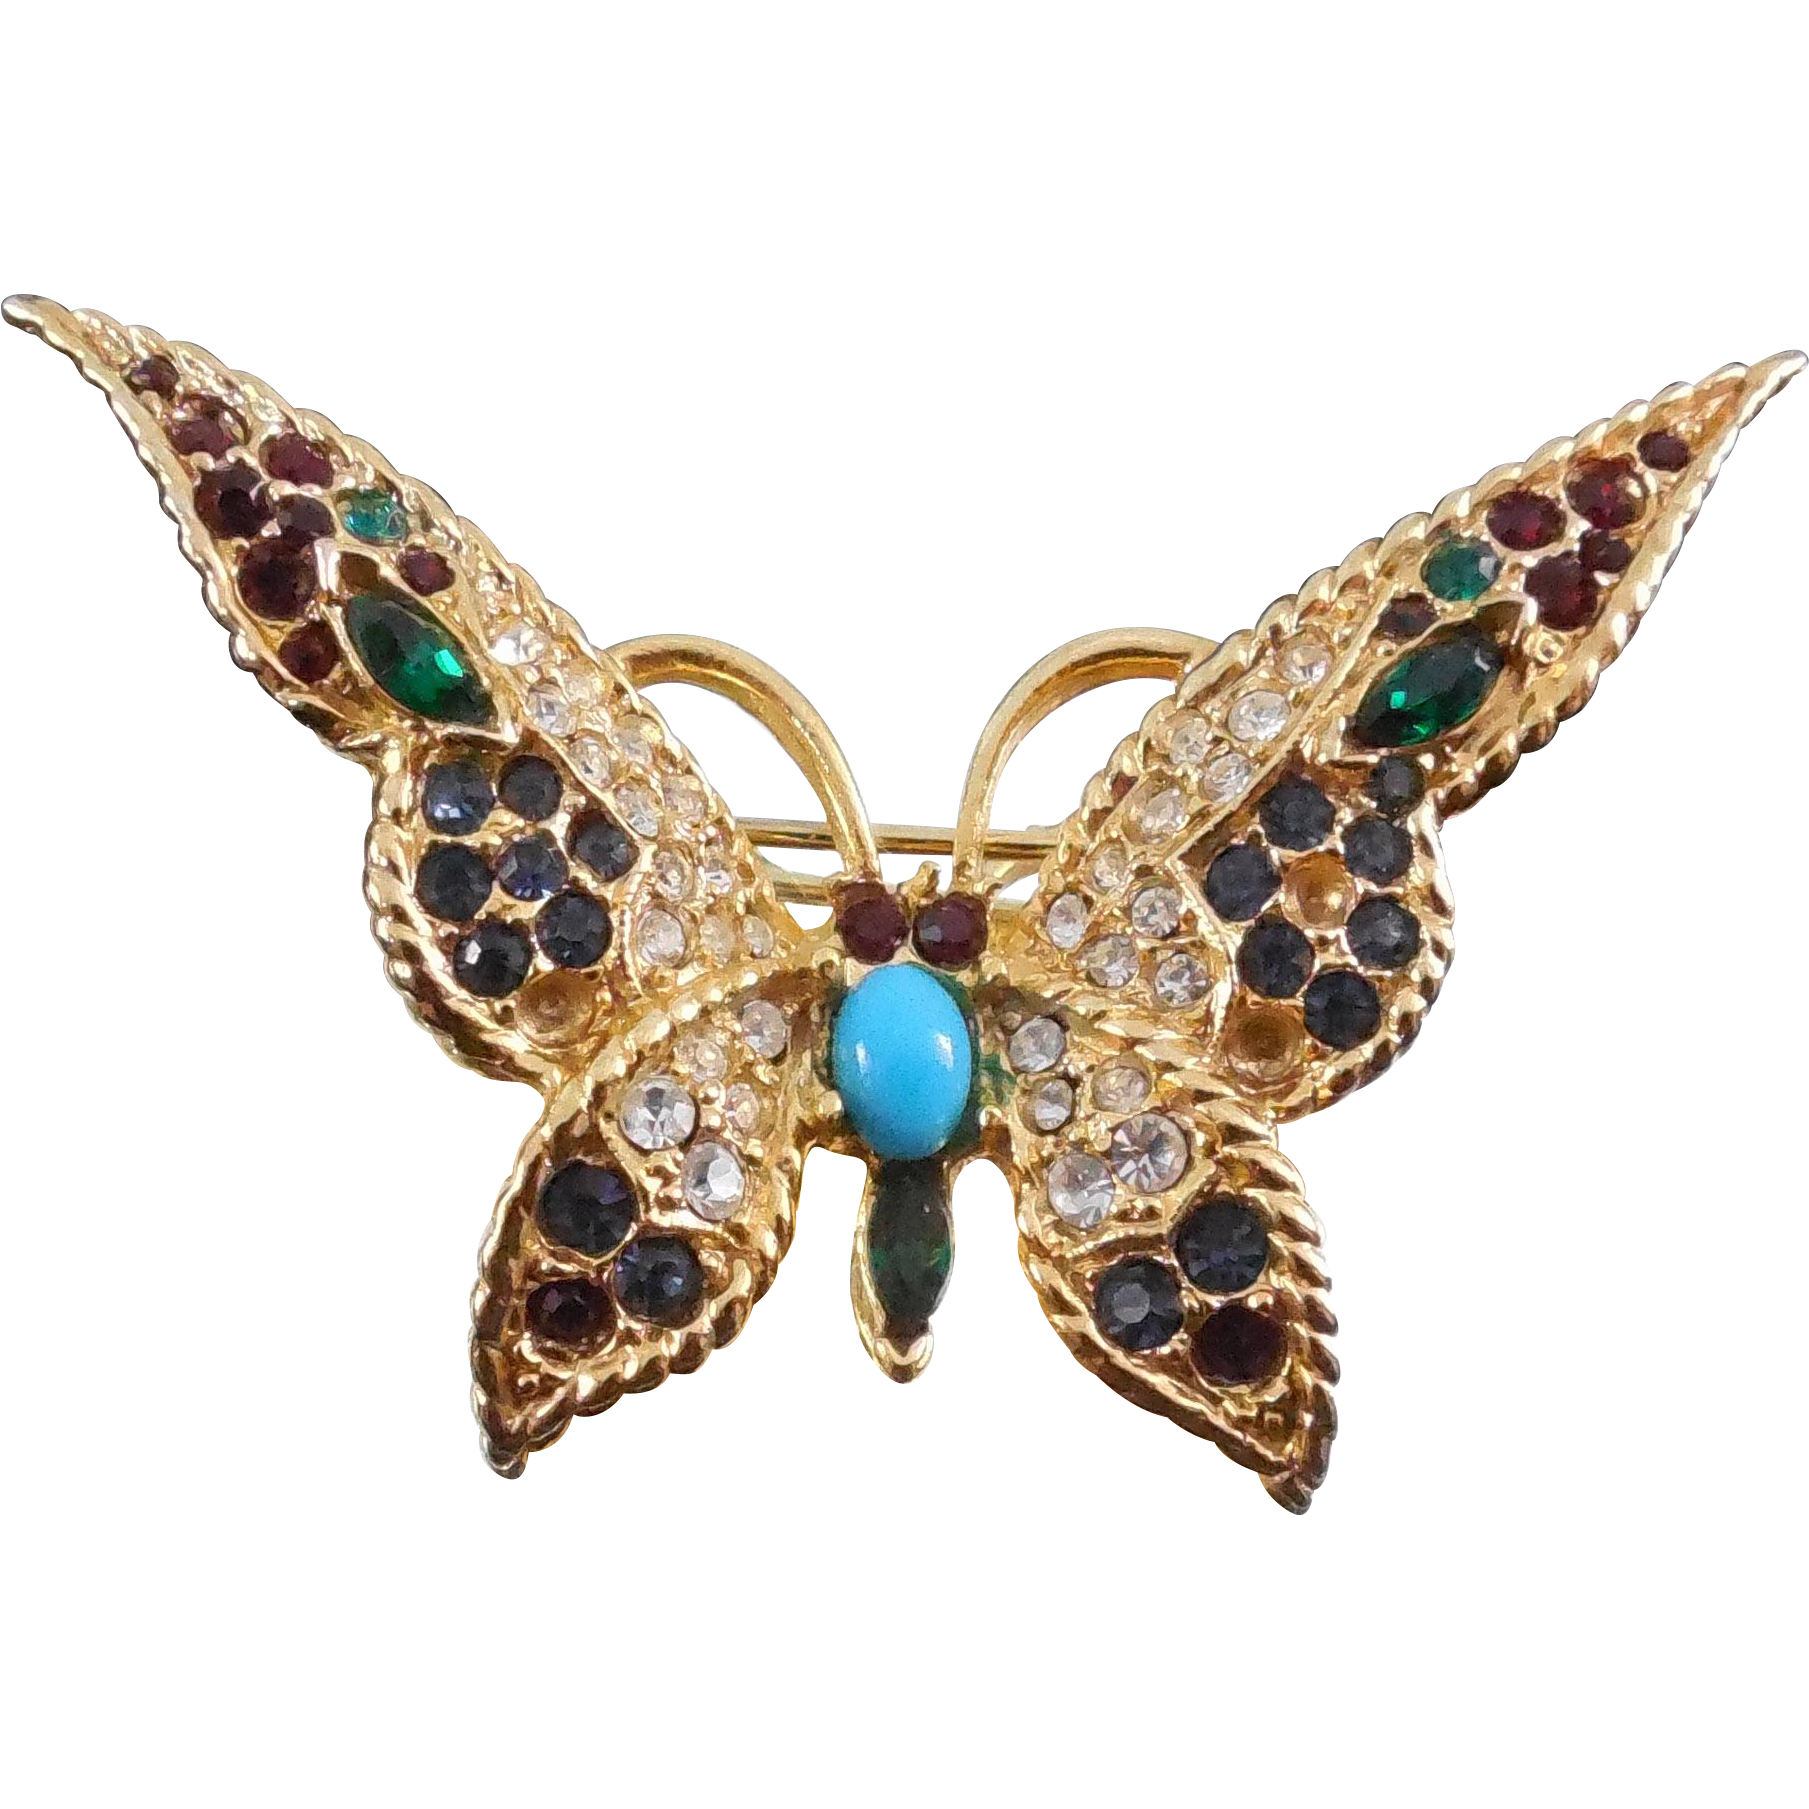 Unsigned Boucher Butterfly Or Moth Brooch #375 - Missing a few stones